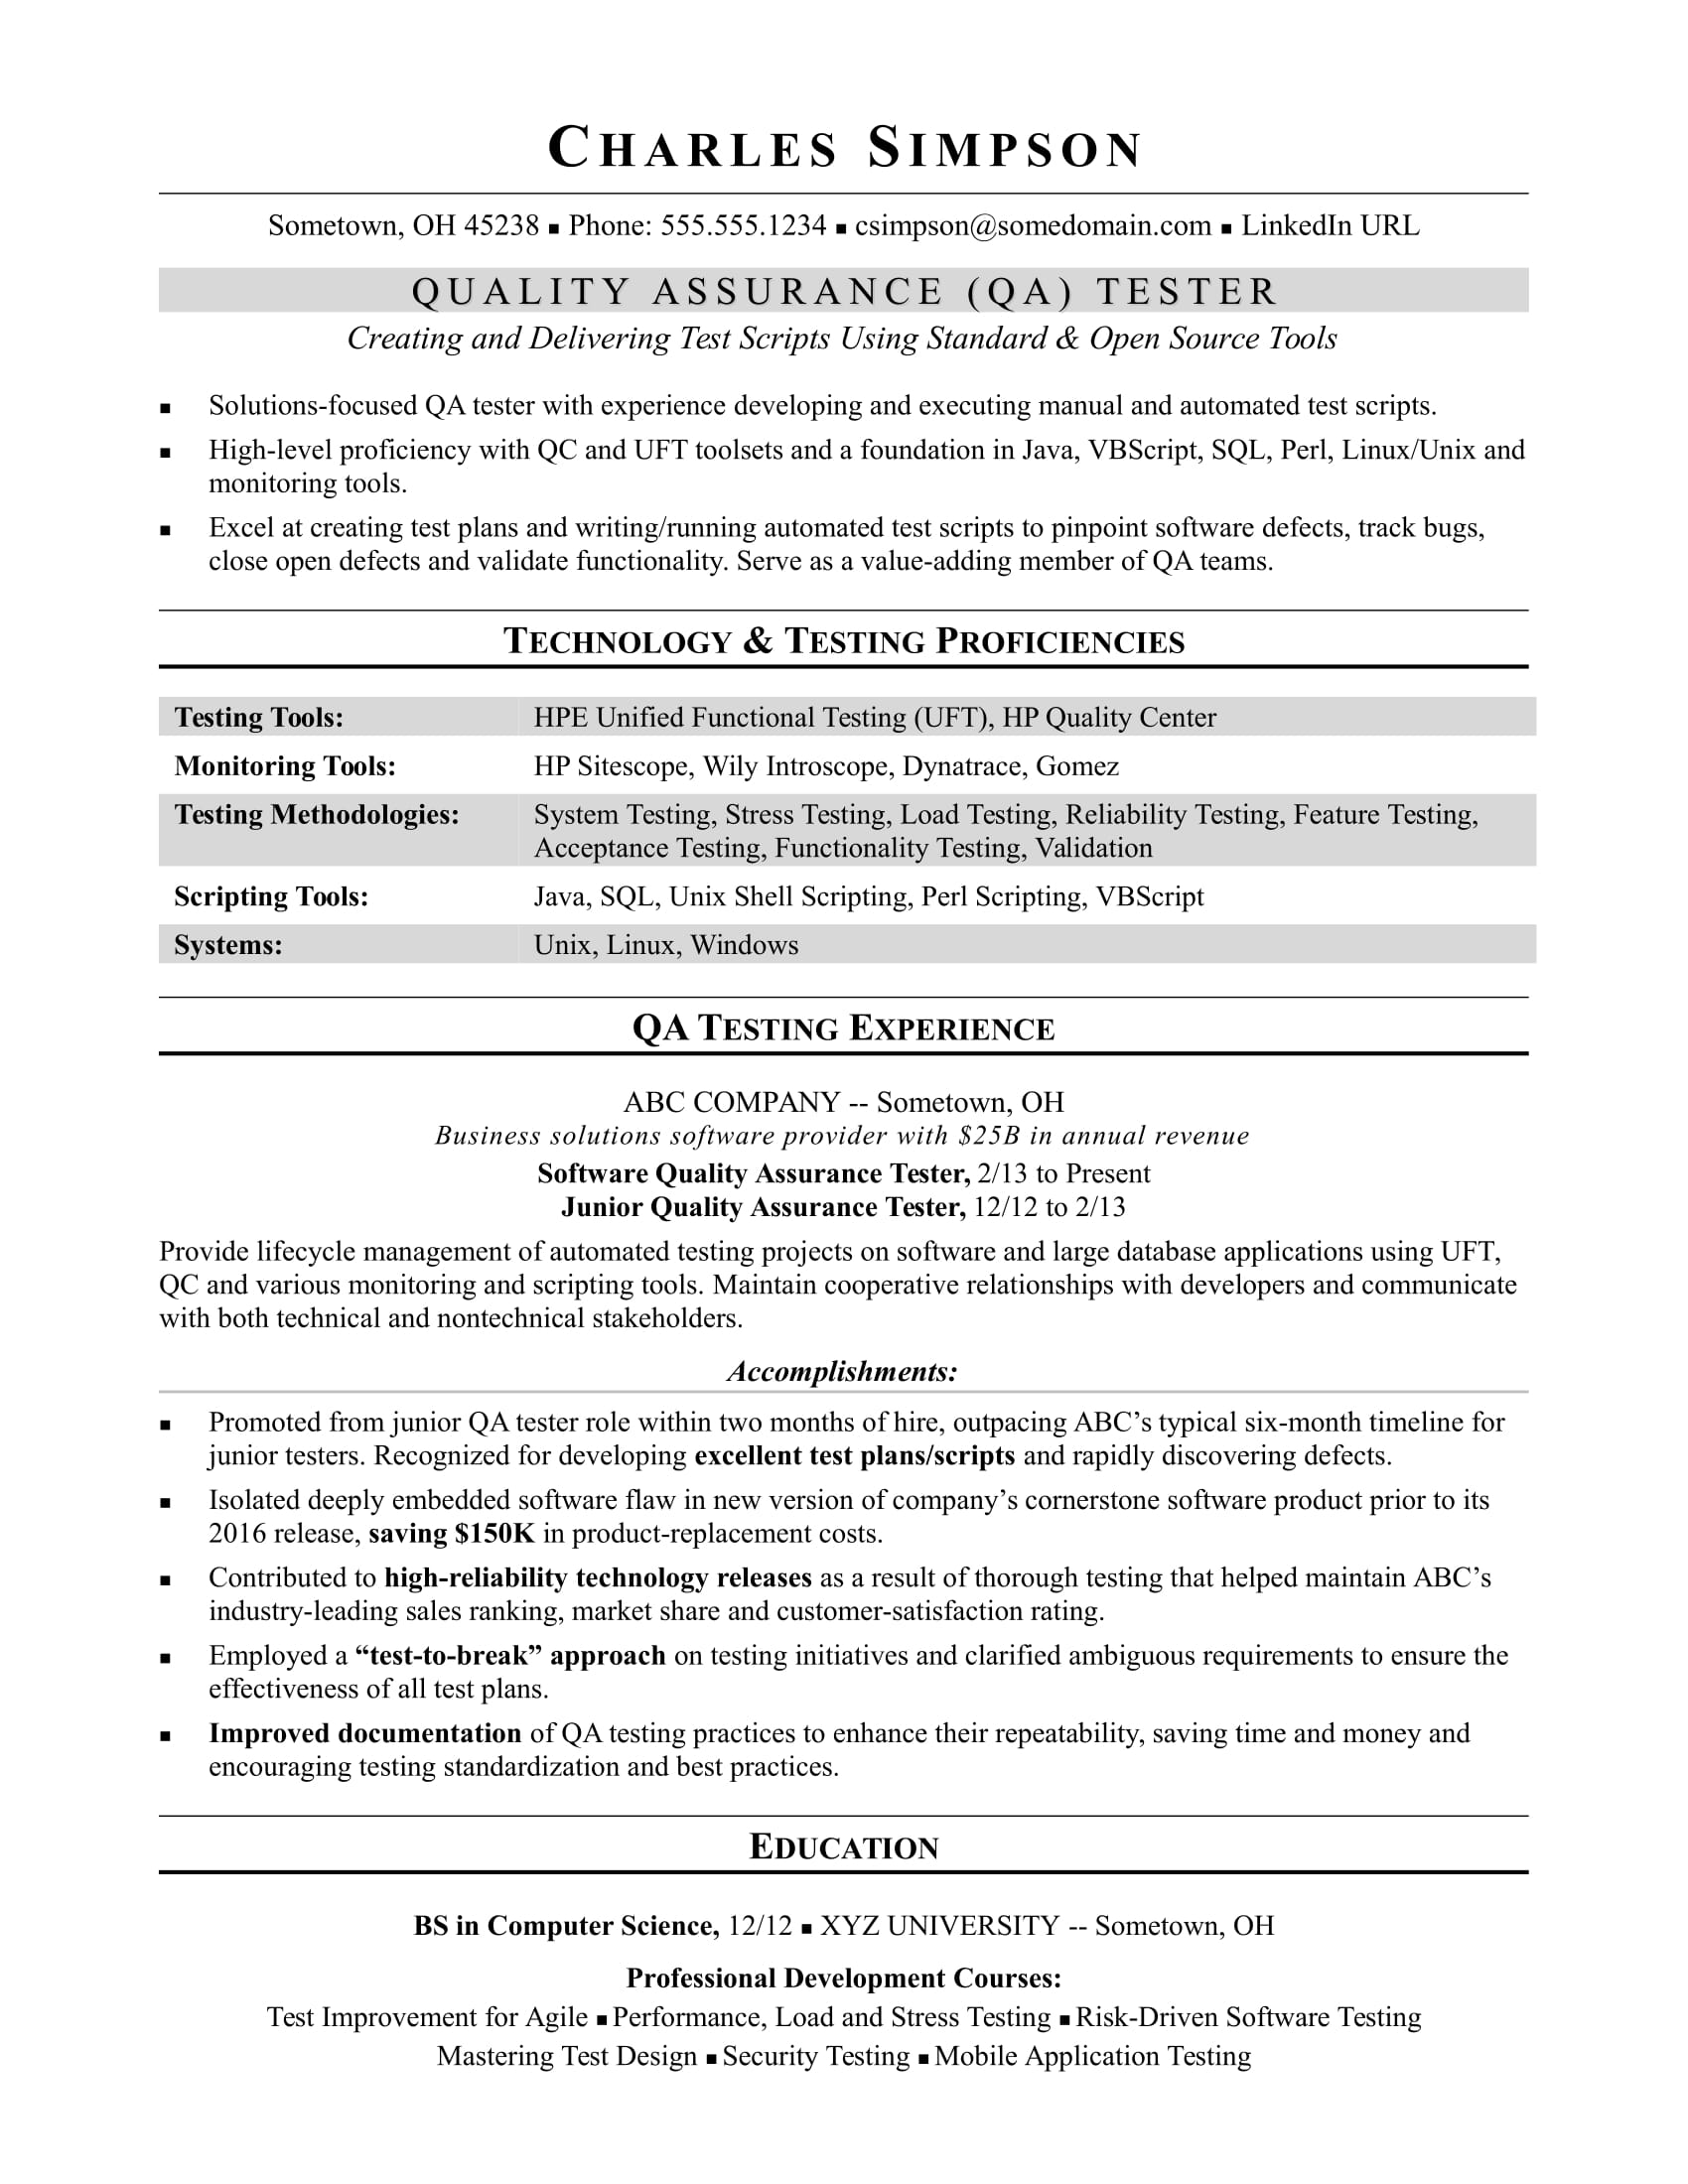 sample resume for midlevel qa software tester monster with years experience good relevant Resume Qa Tester Resume With 5 Years Experience